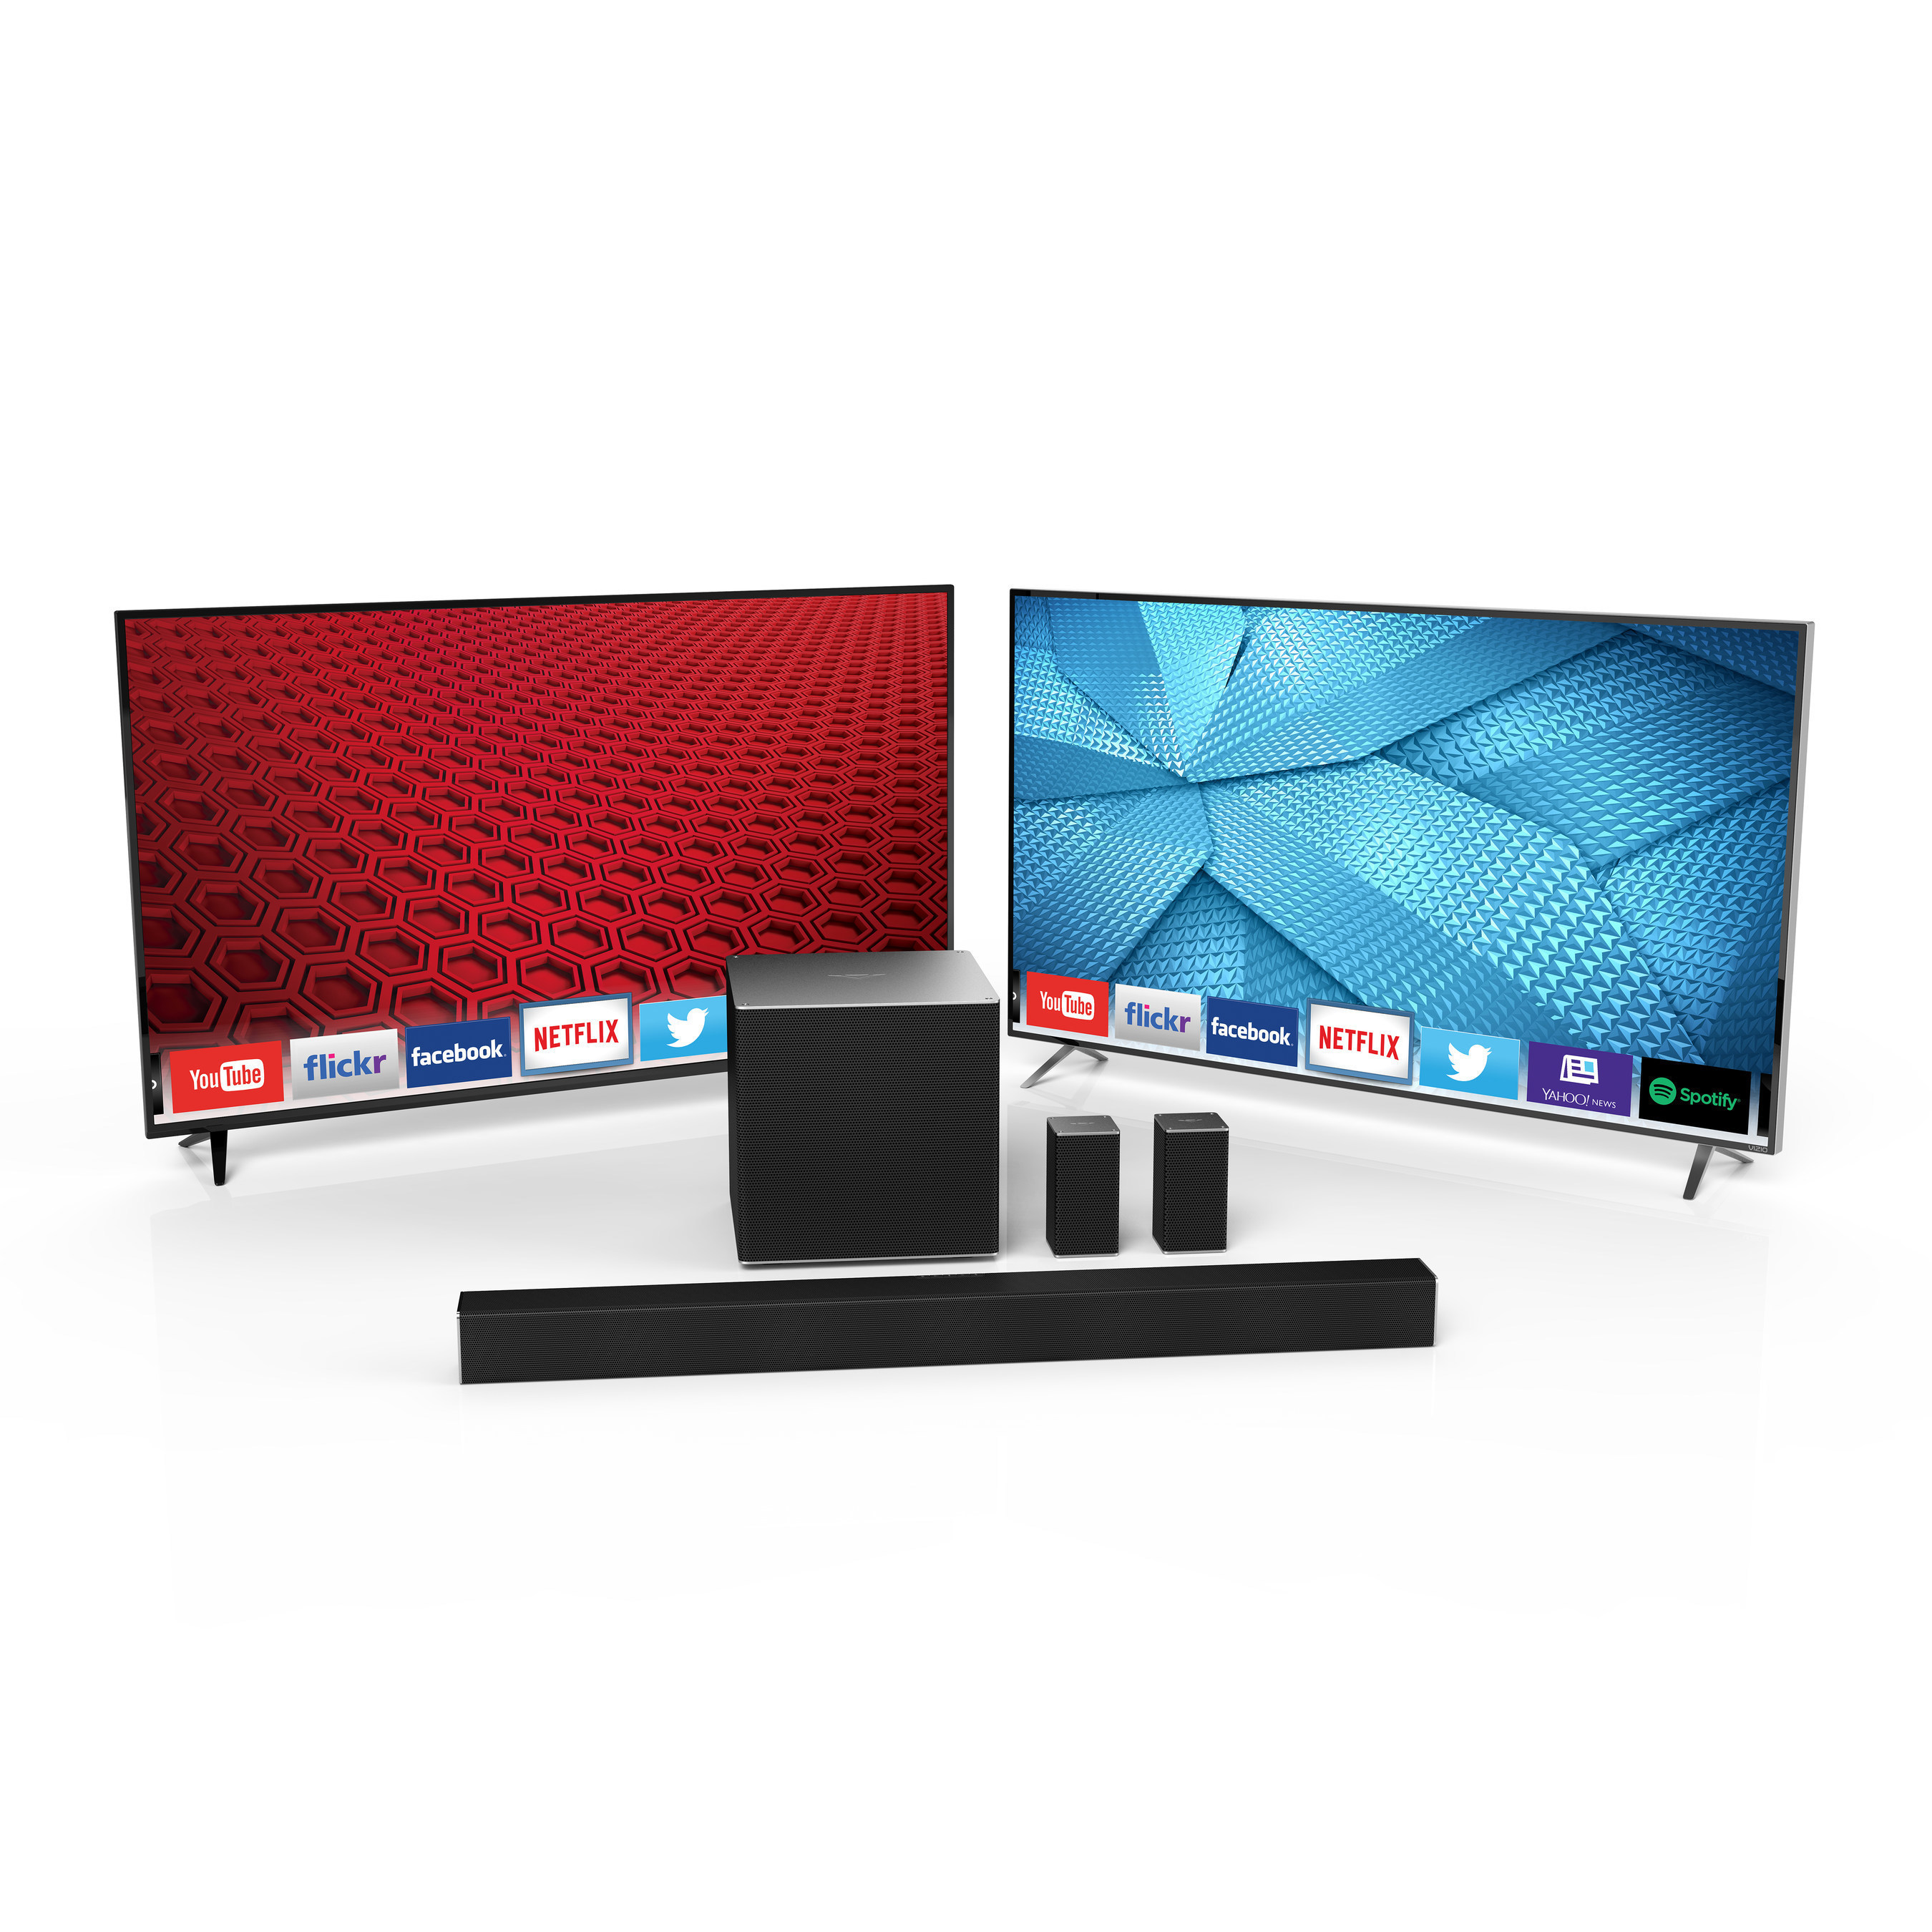 VIZIO Brings All-New Ultra HD and Audio Offerings to Canada